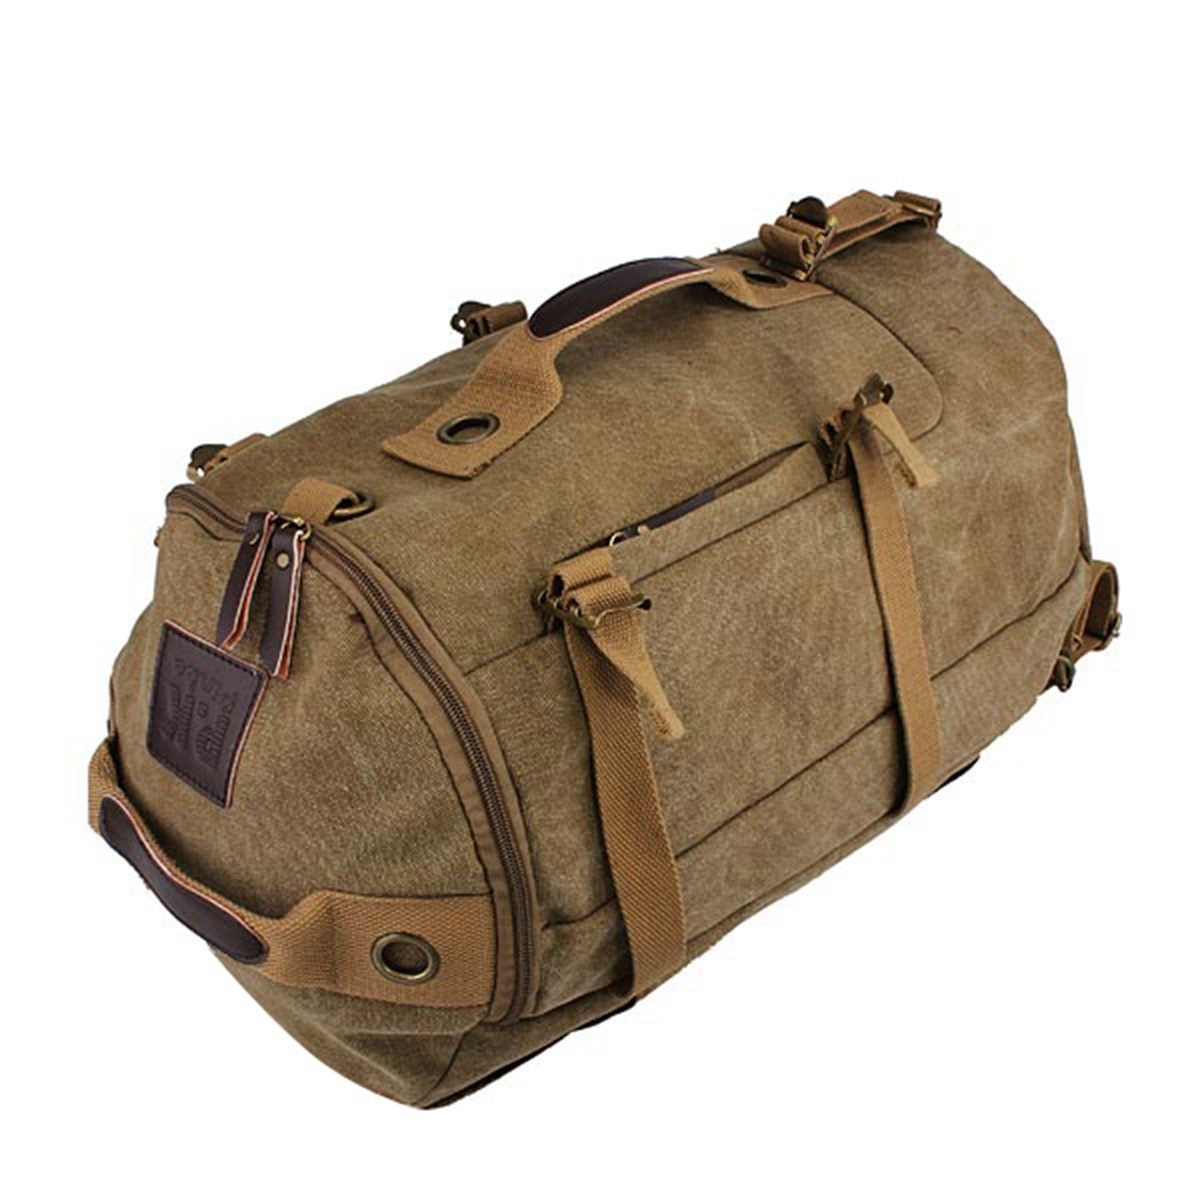 New Arrival Canvas Tactical Backpack Utility Backpack Rucksack Military Shoulder Trekking Bag for Outdoor Camping Hiking 7colors